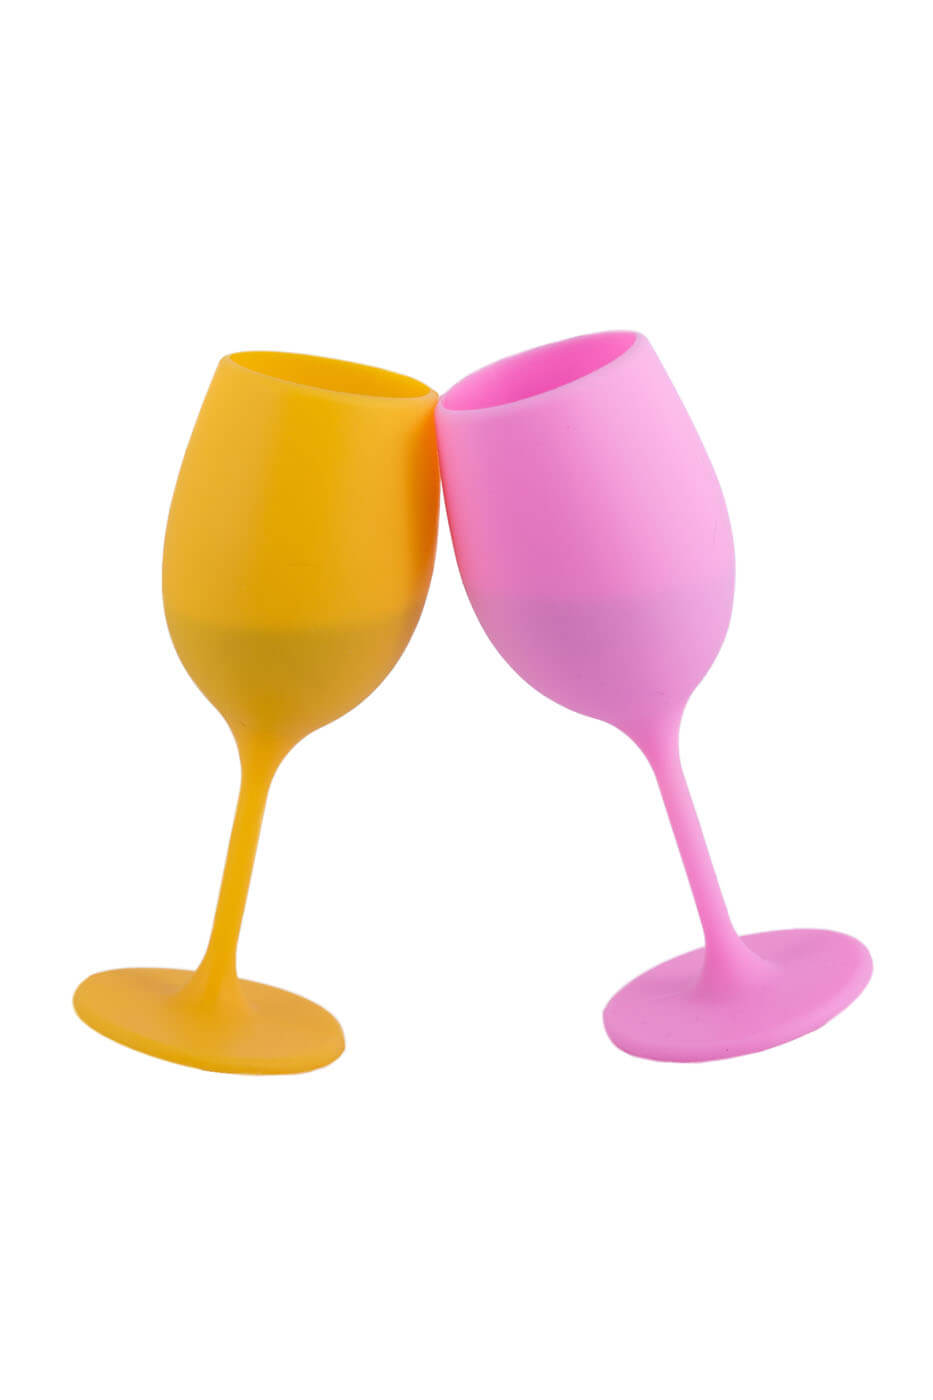 77dfb6bef45 Silicone Wine Glass - Pack of 2 Glasses